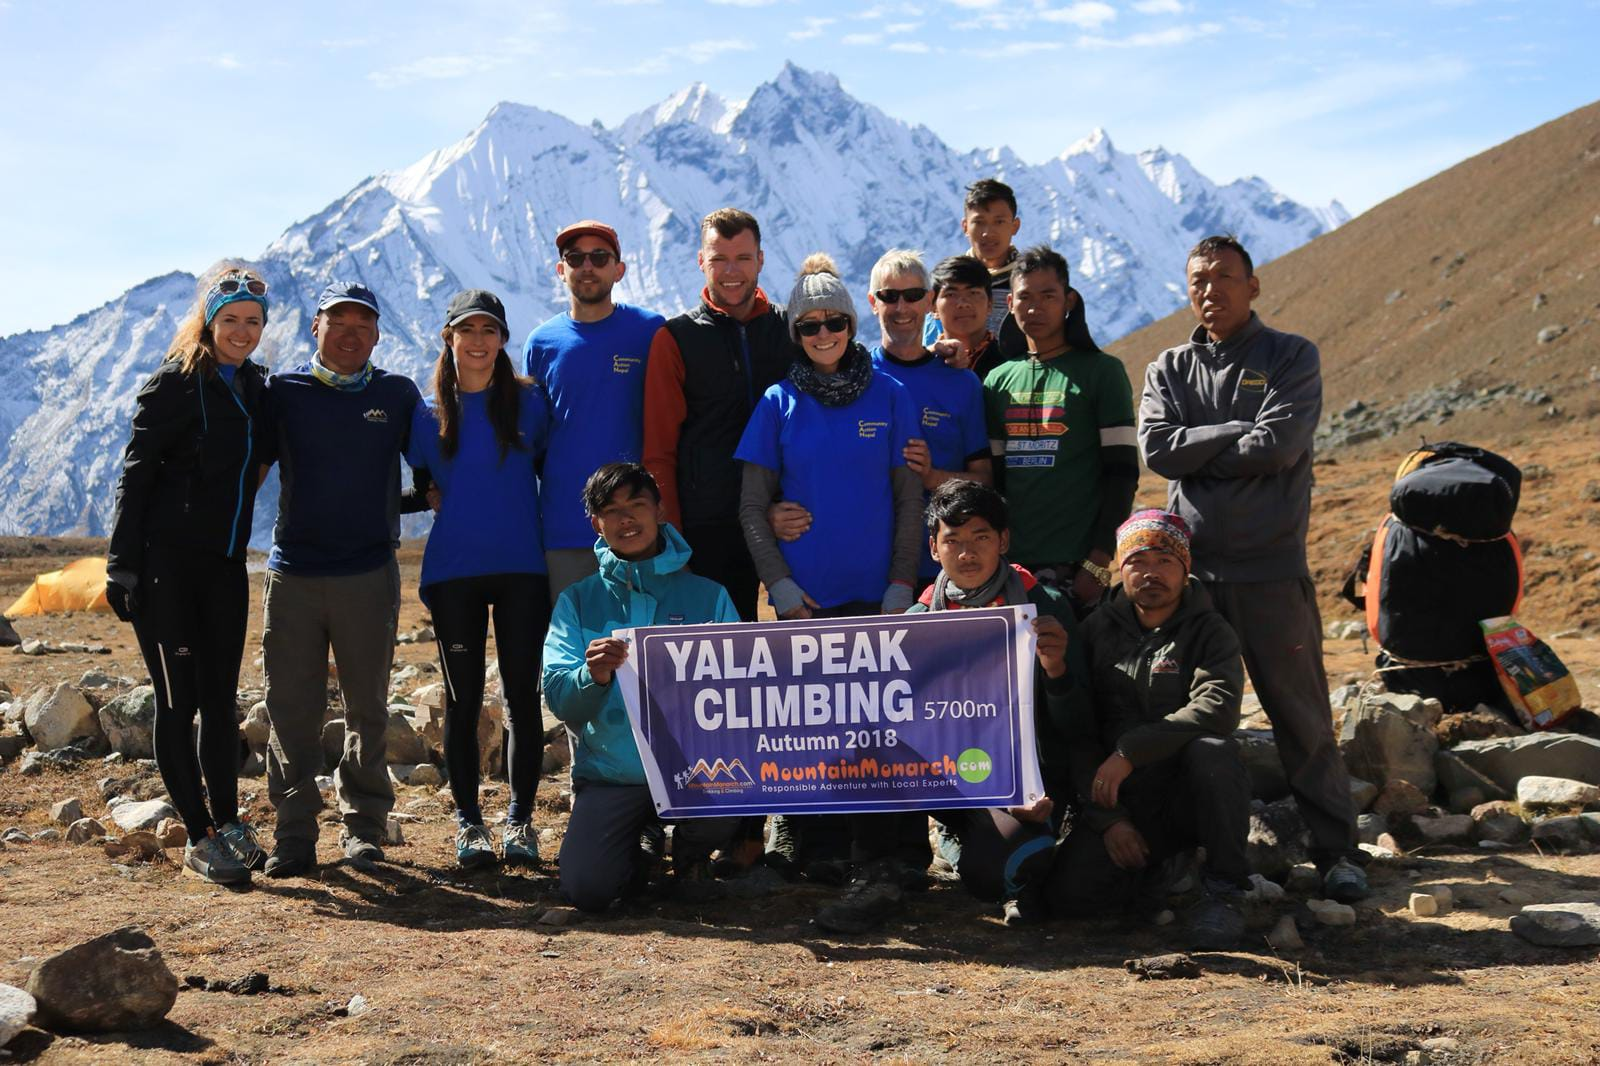 The successful 2018 Team Yala